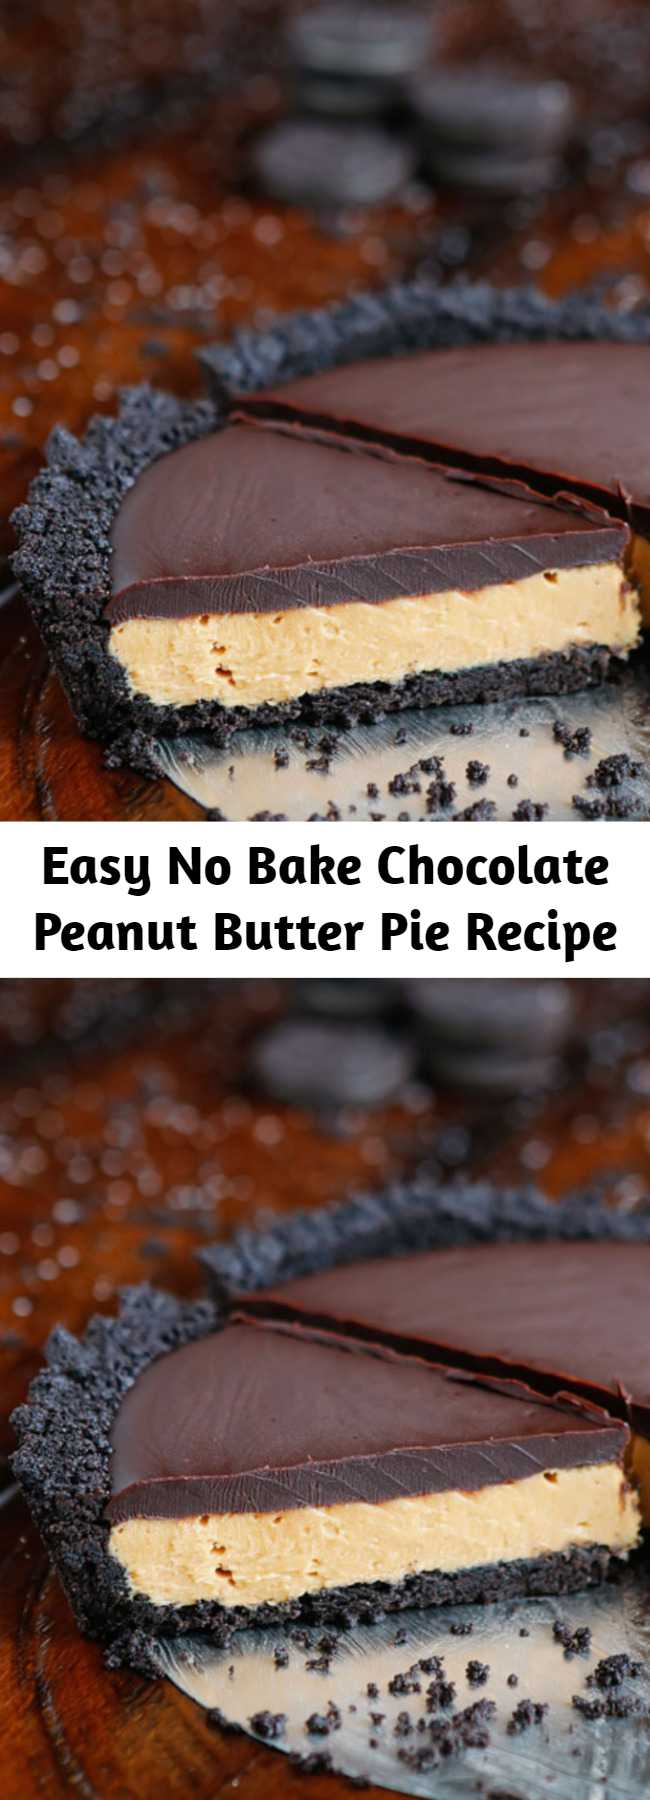 Easy No Bake Chocolate Peanut Butter Pie Recipe - This Peanut Butter Pie recipe is OUT of this world!! This is hands down one of the easiest, most impressive desserts I've ever made. There's only six simple ingredients — it's the best no bake peanut butter pie ever!